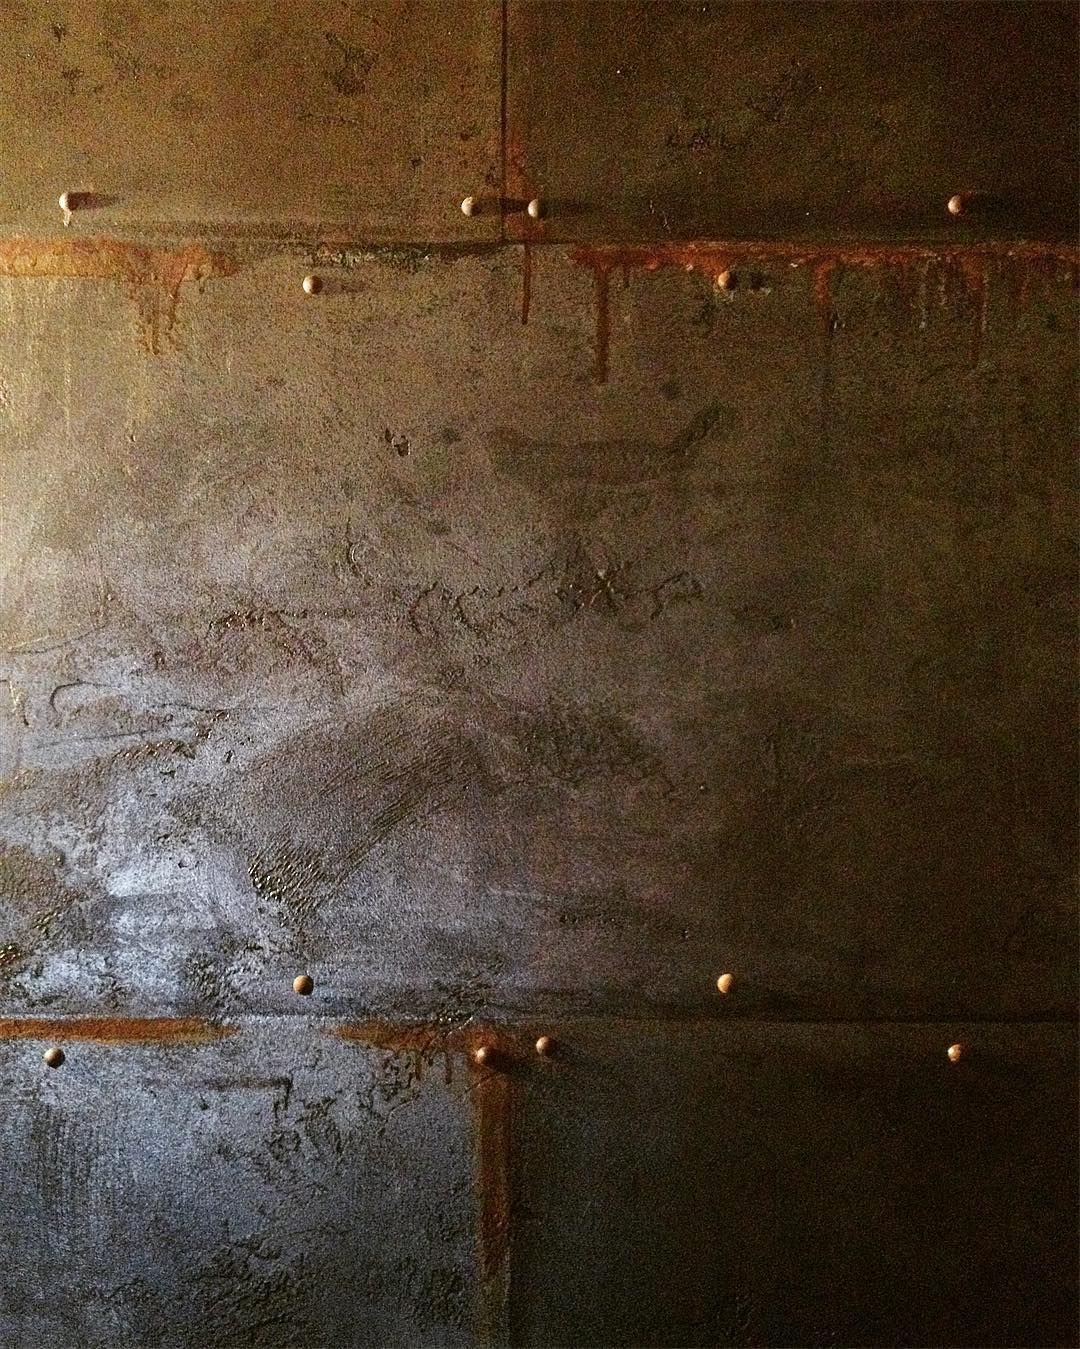 Patina Aluminium Accent Wall Ideas: Men's Room In A Winery With A Patina Wall Finish